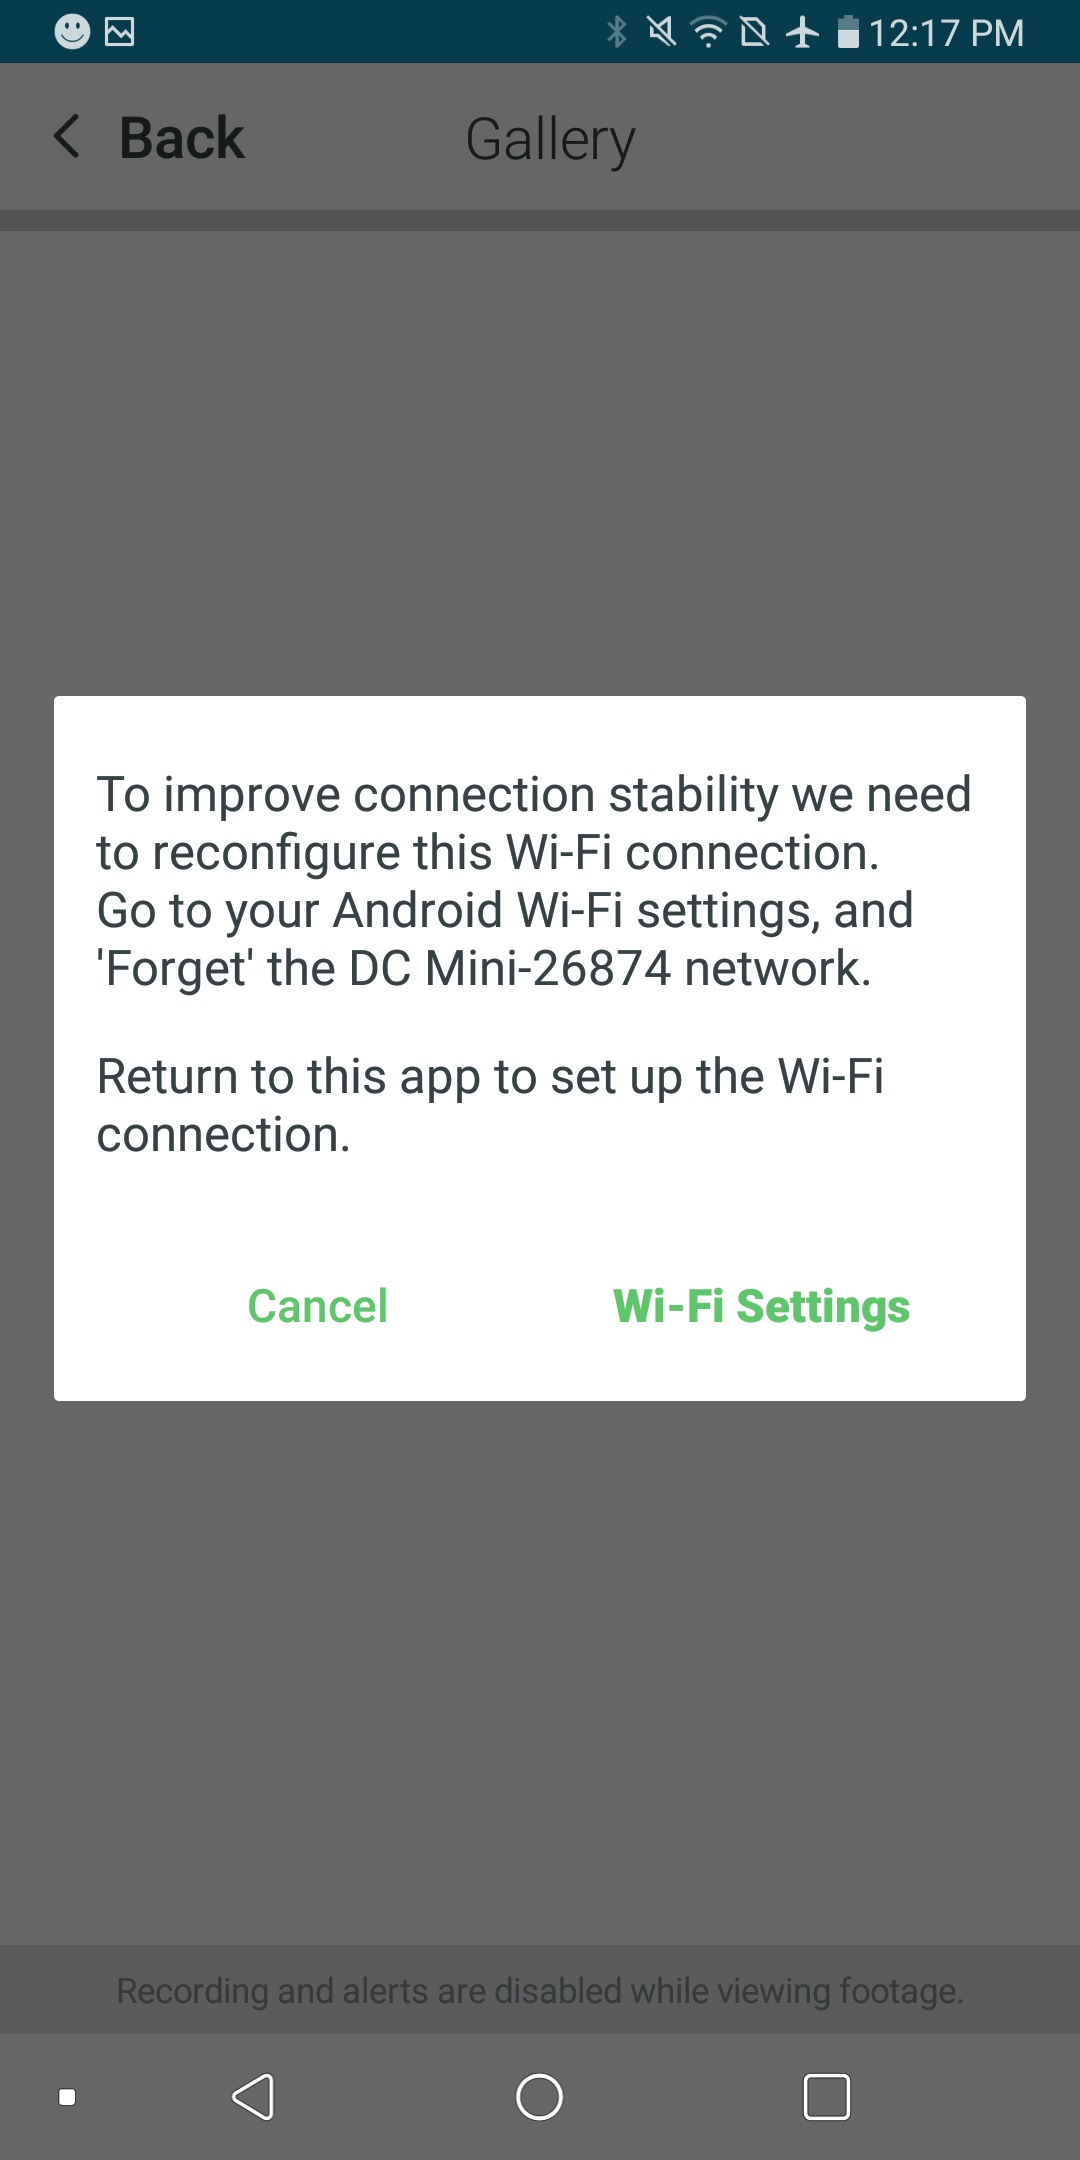 How to Reconfigure a Wi-Fi Connection and Forget the Network